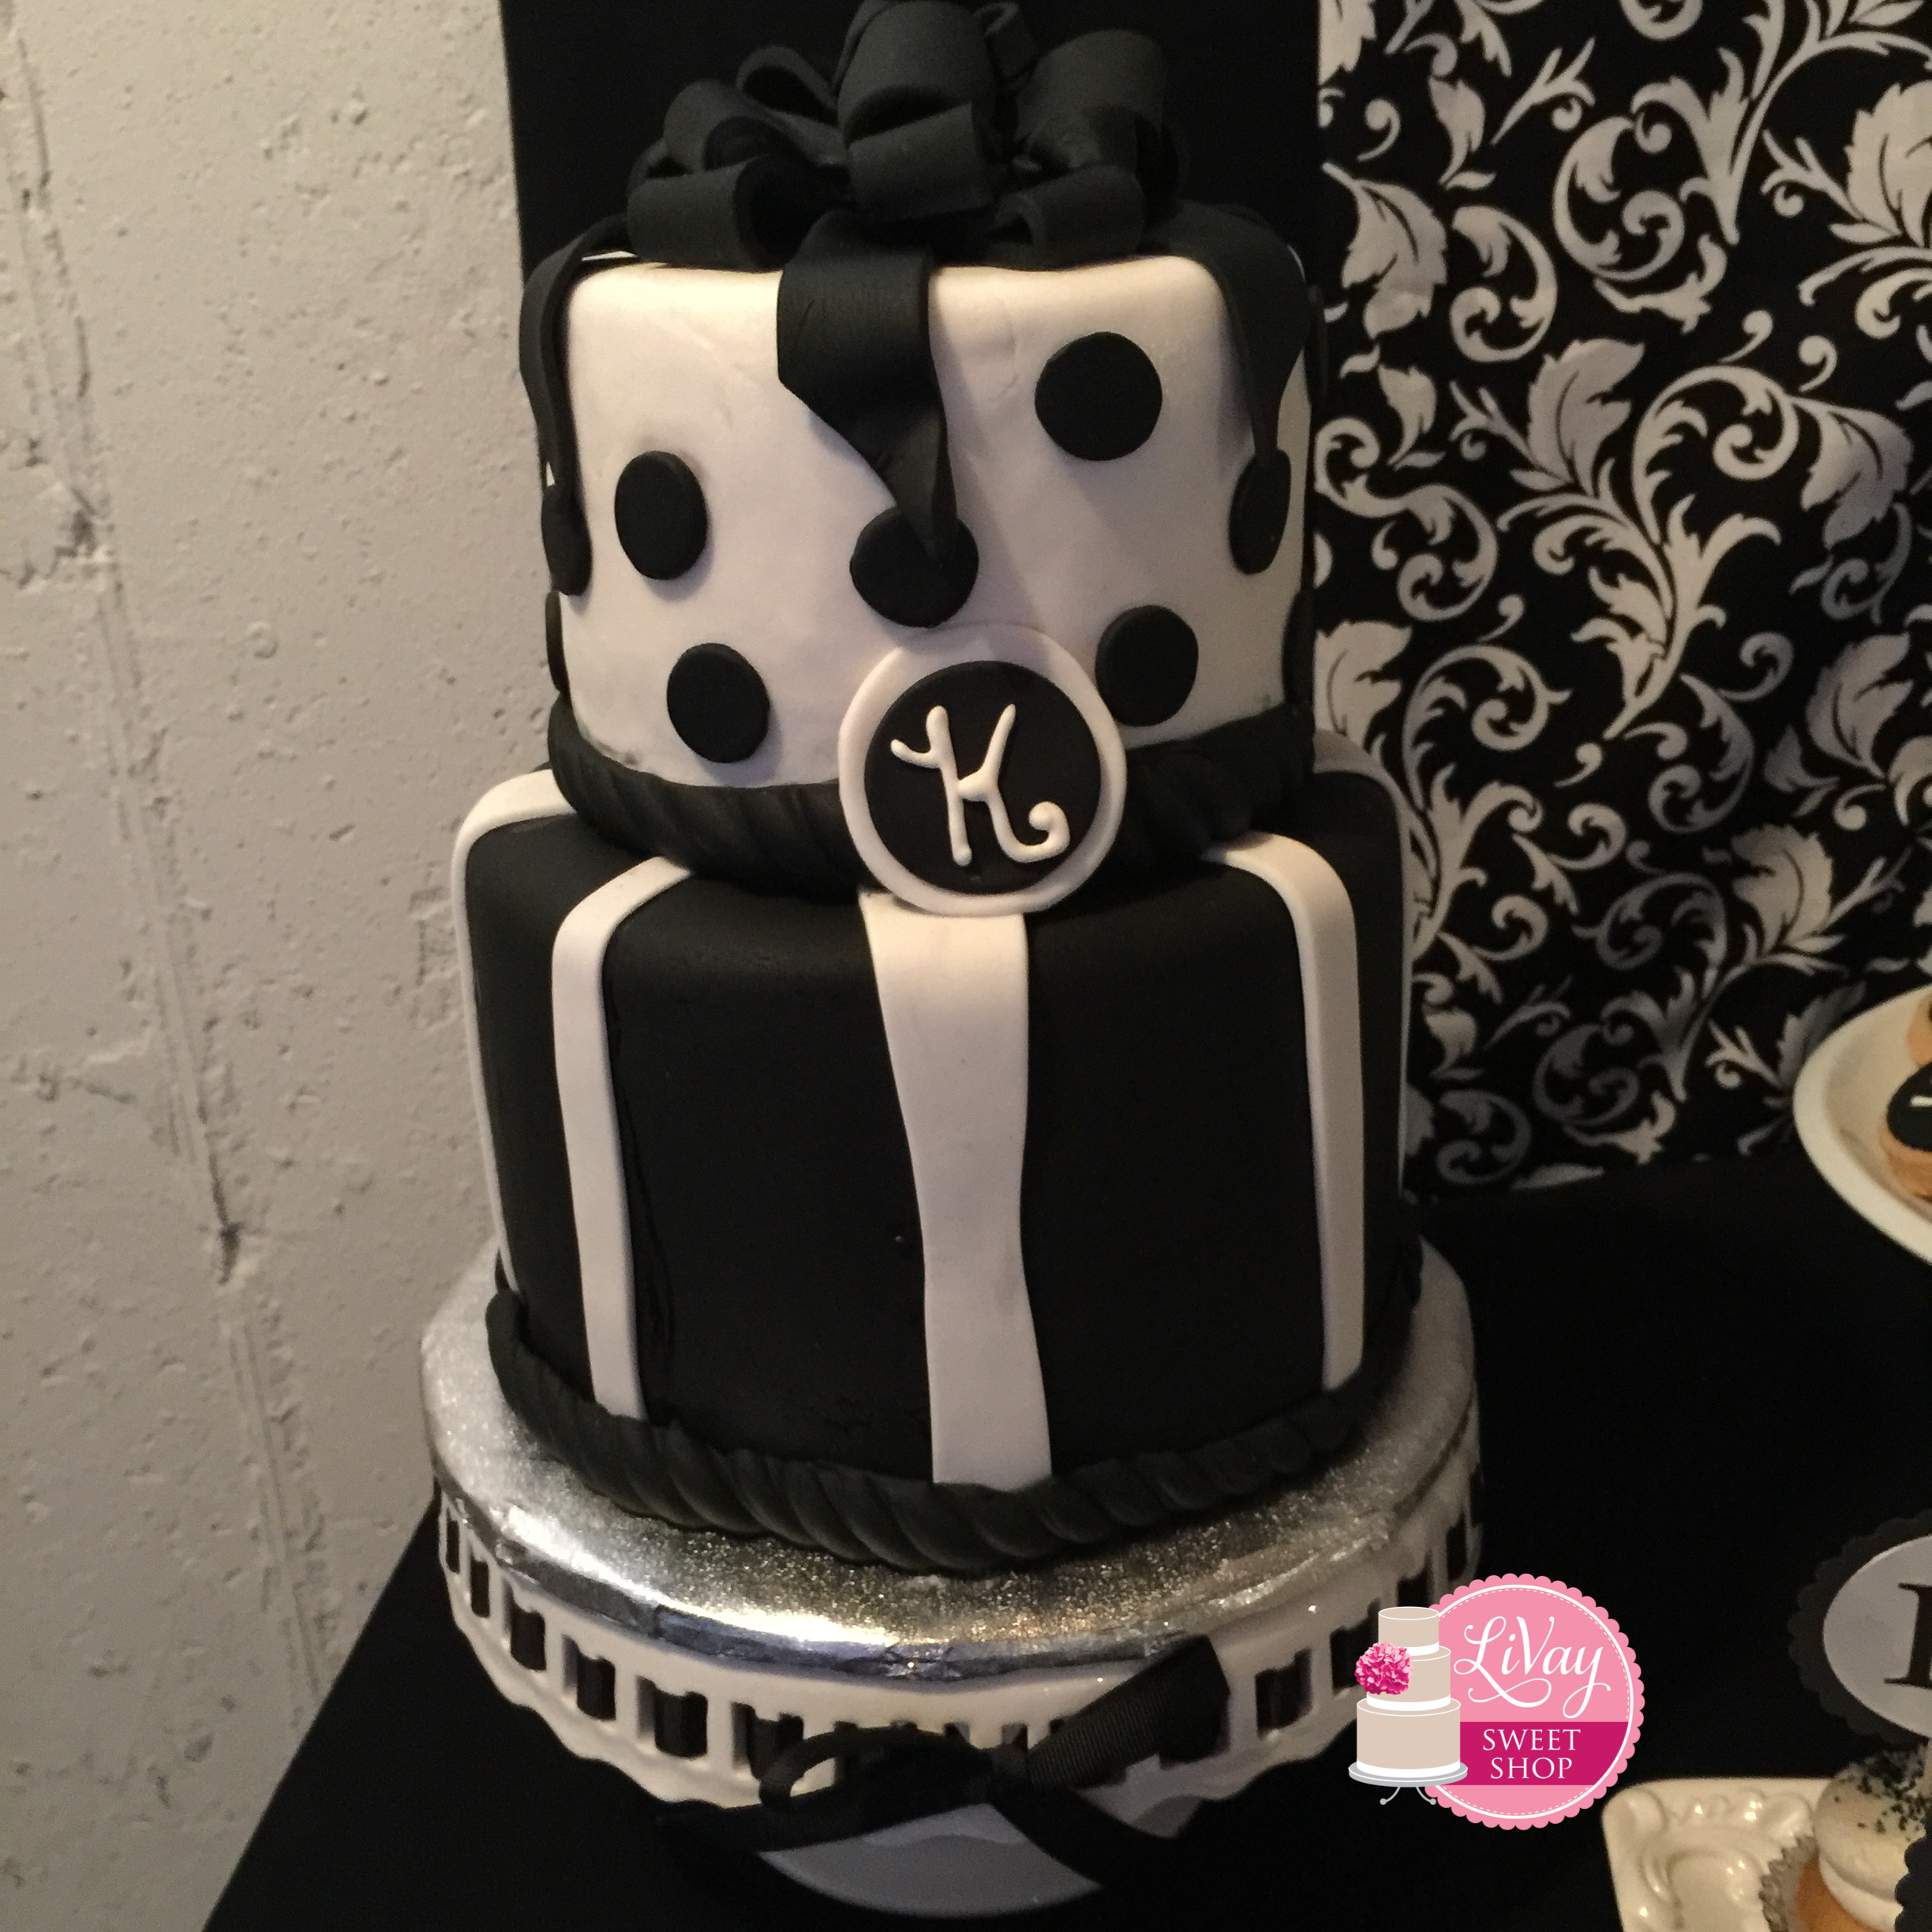 Black and White Fondant Cake